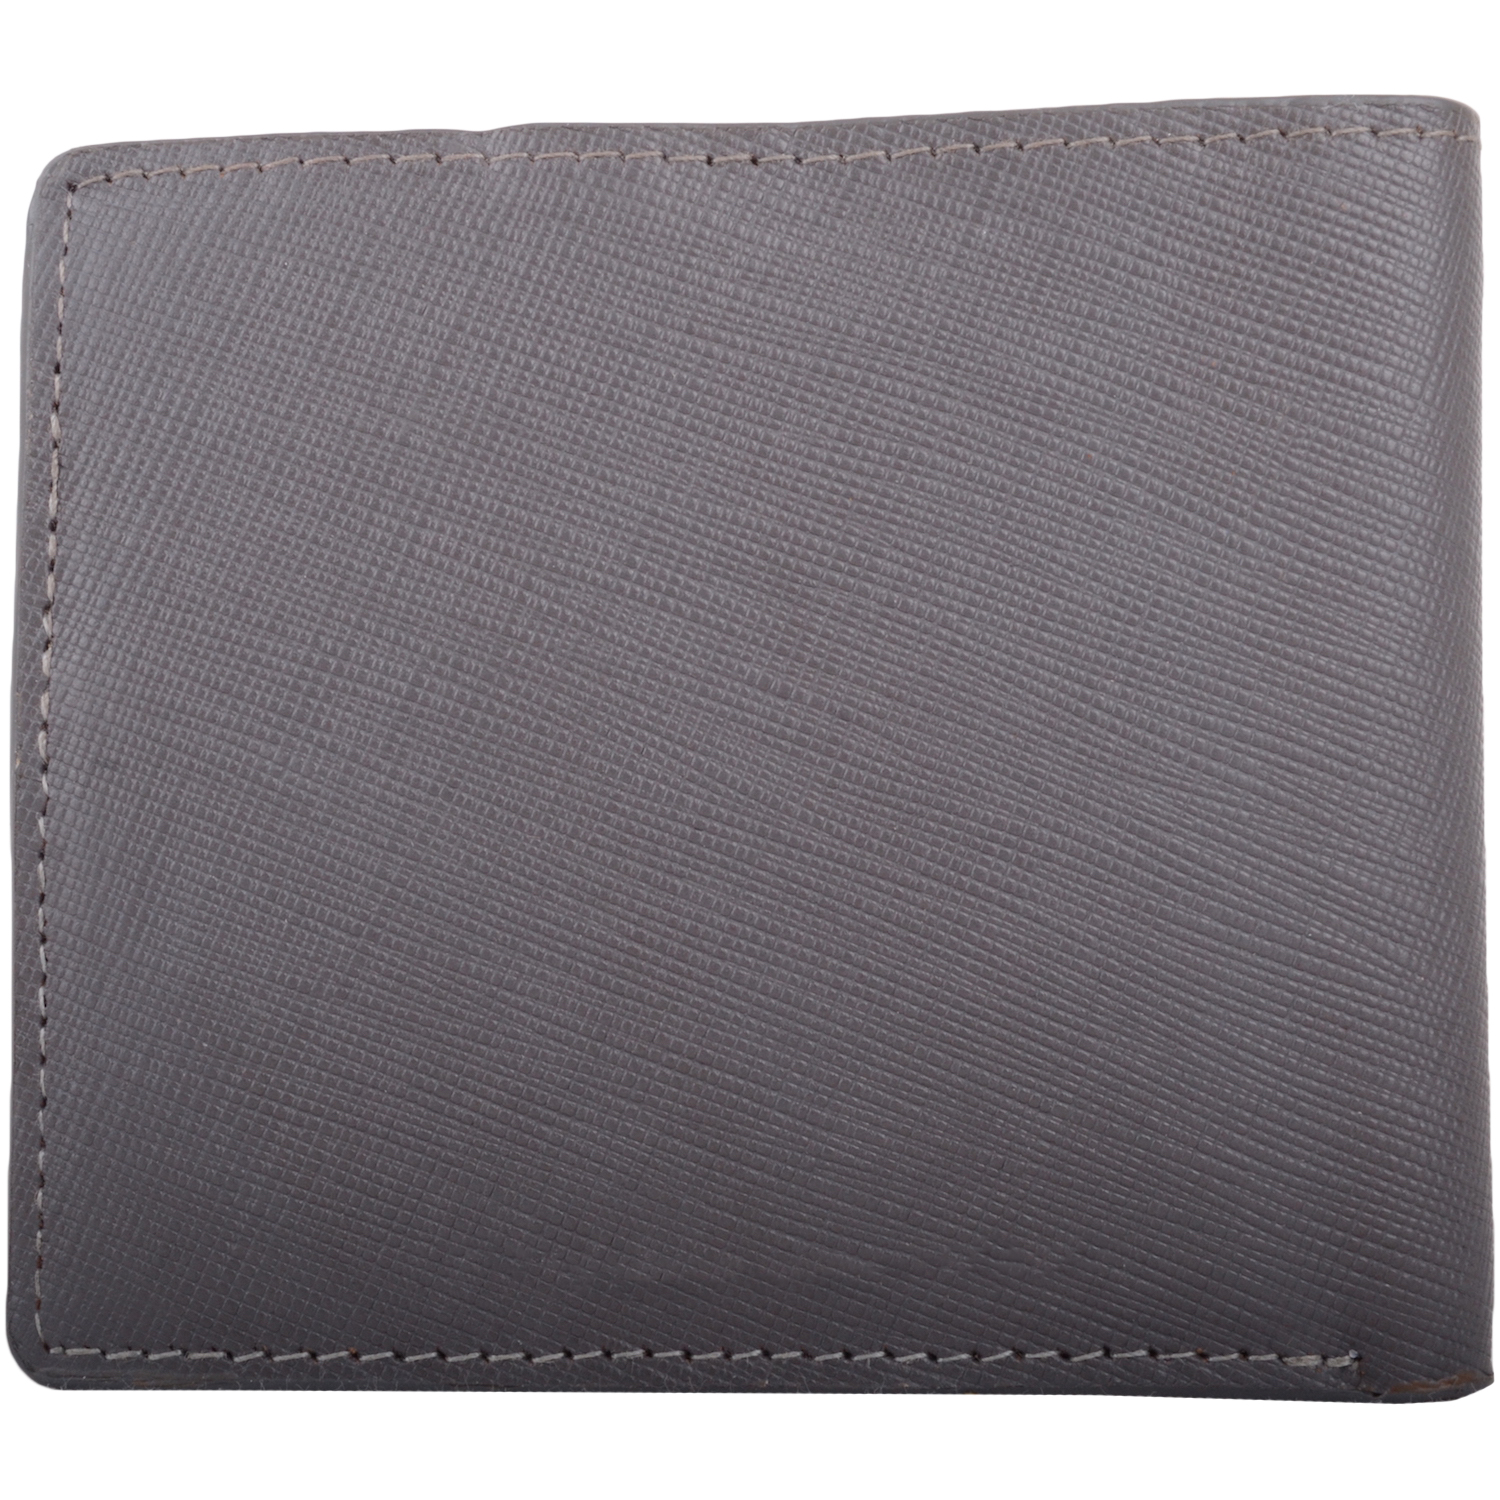 RFID Protected Bi-Fold Soft Leather Wallet - Grey/Red